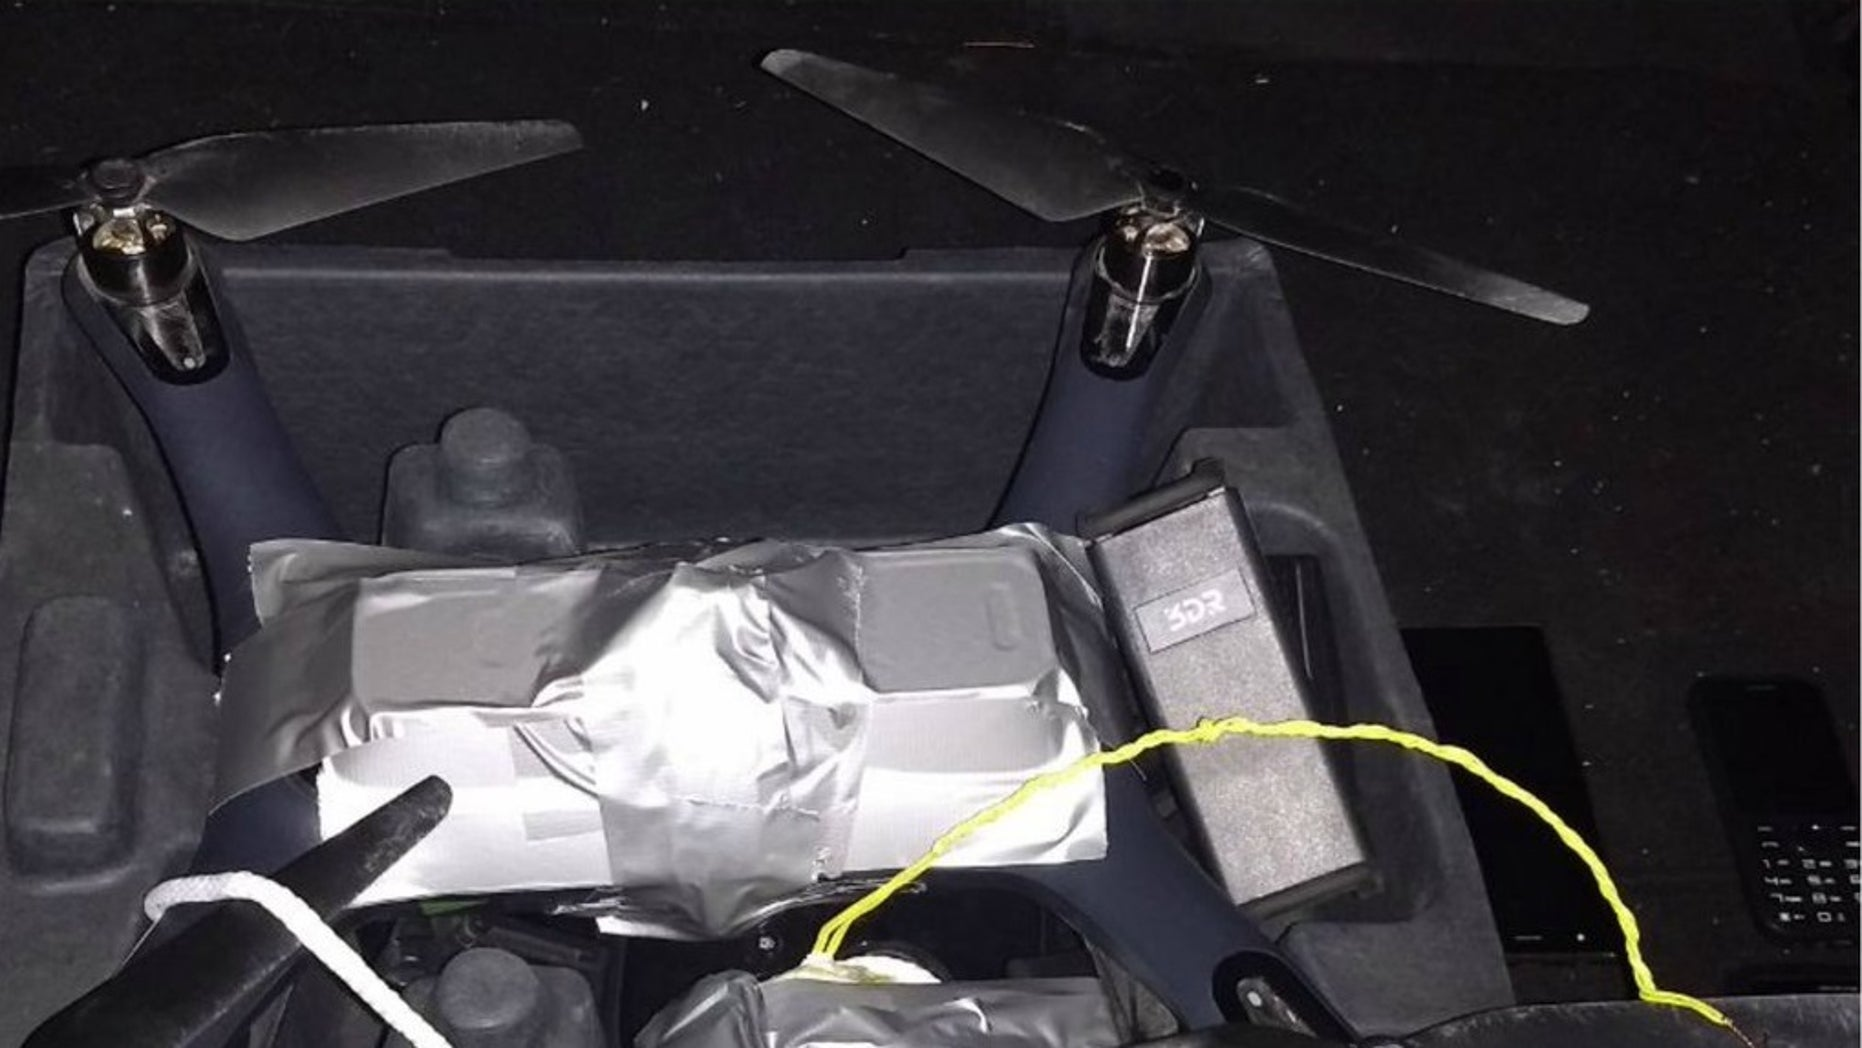 Mexico's Federal Police discovered an IED attached to a drone during a security check near Guanajuato.